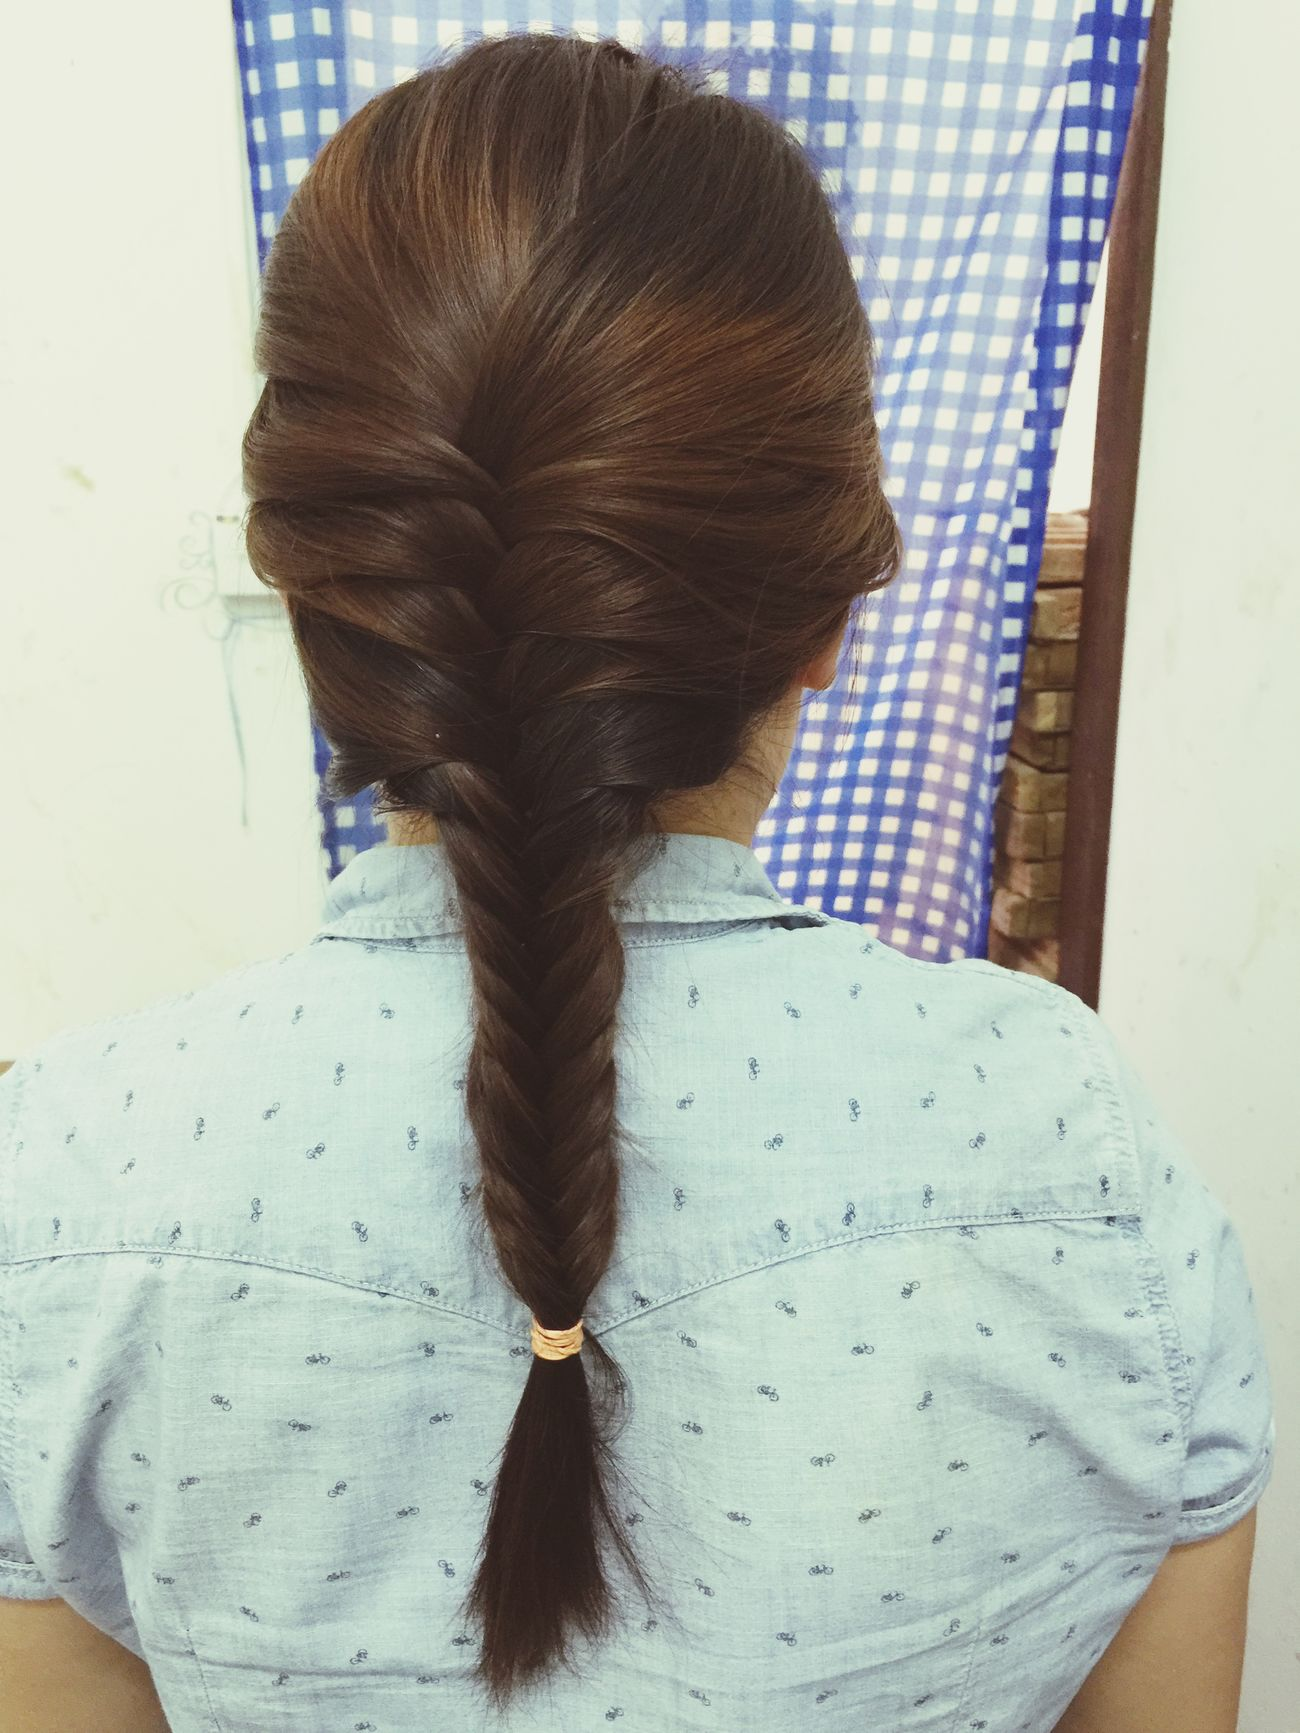 Fishtail Braid FriendsOfMine